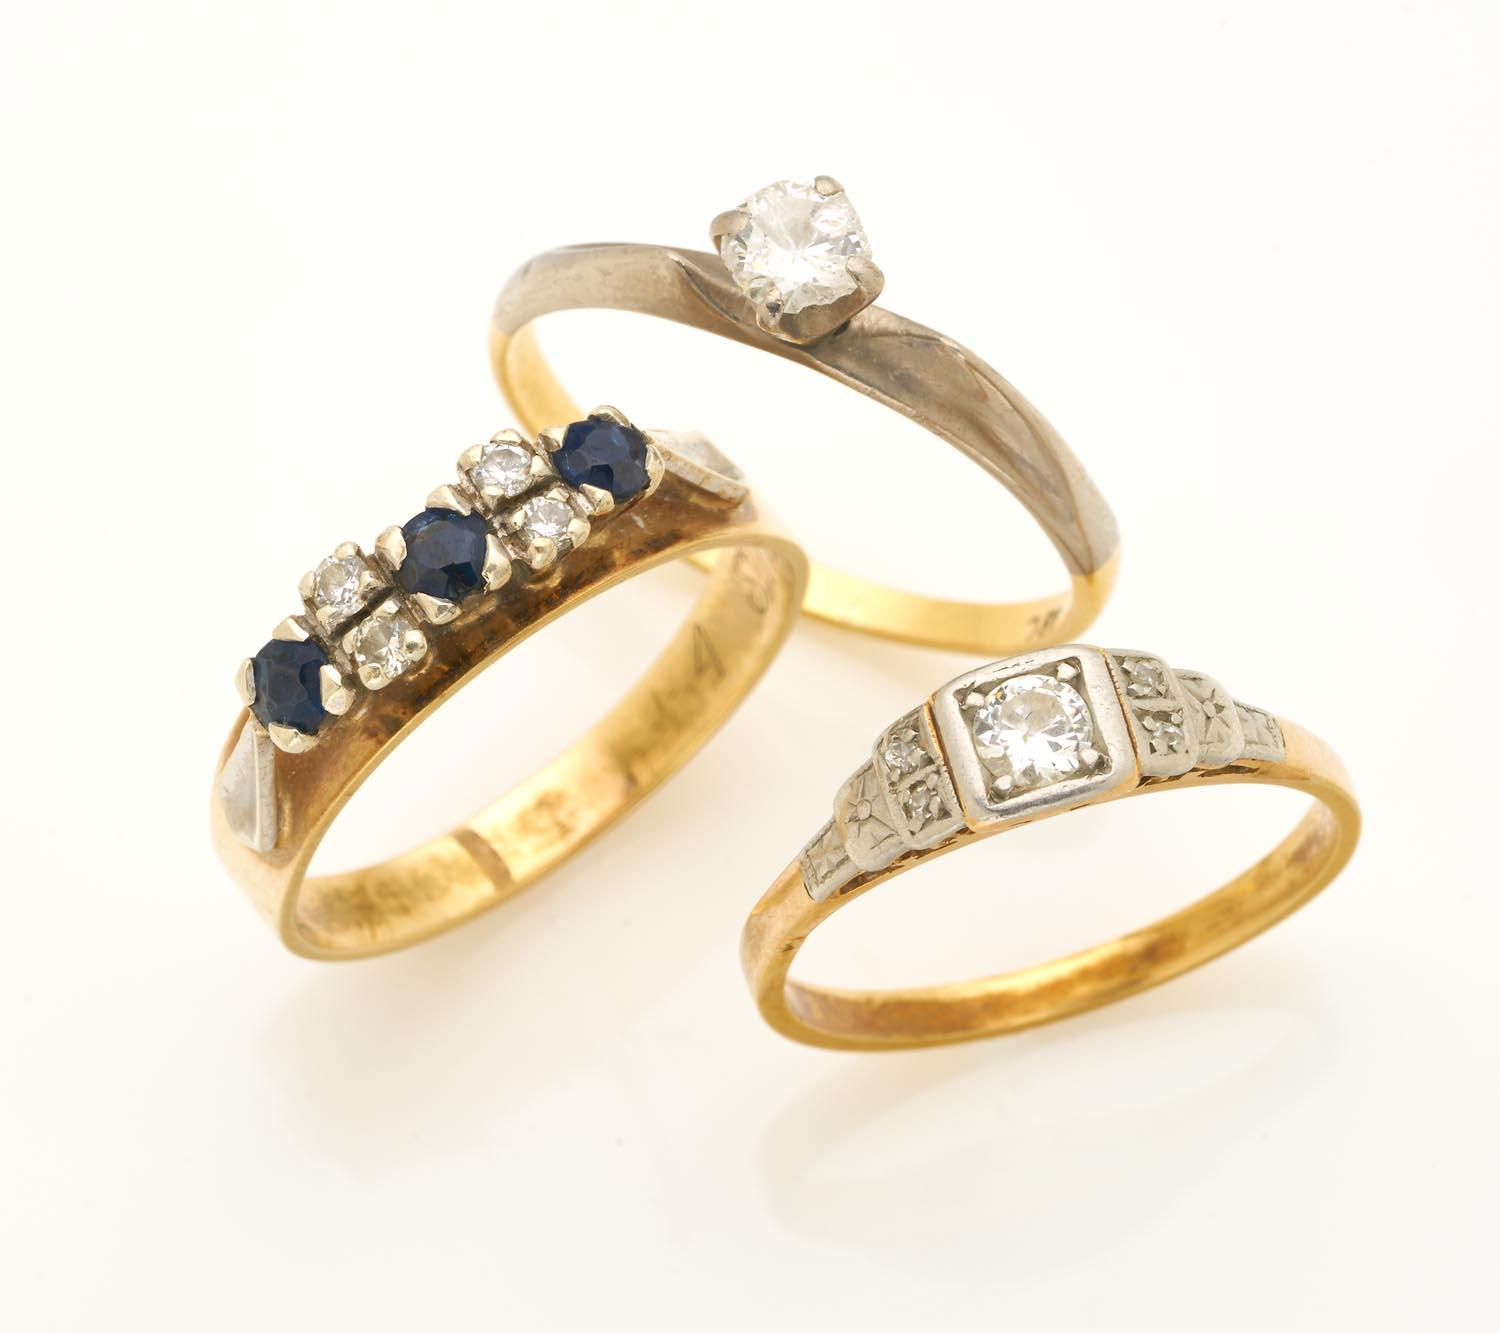 Two solitaire diamond rings and a sapphire and diamond